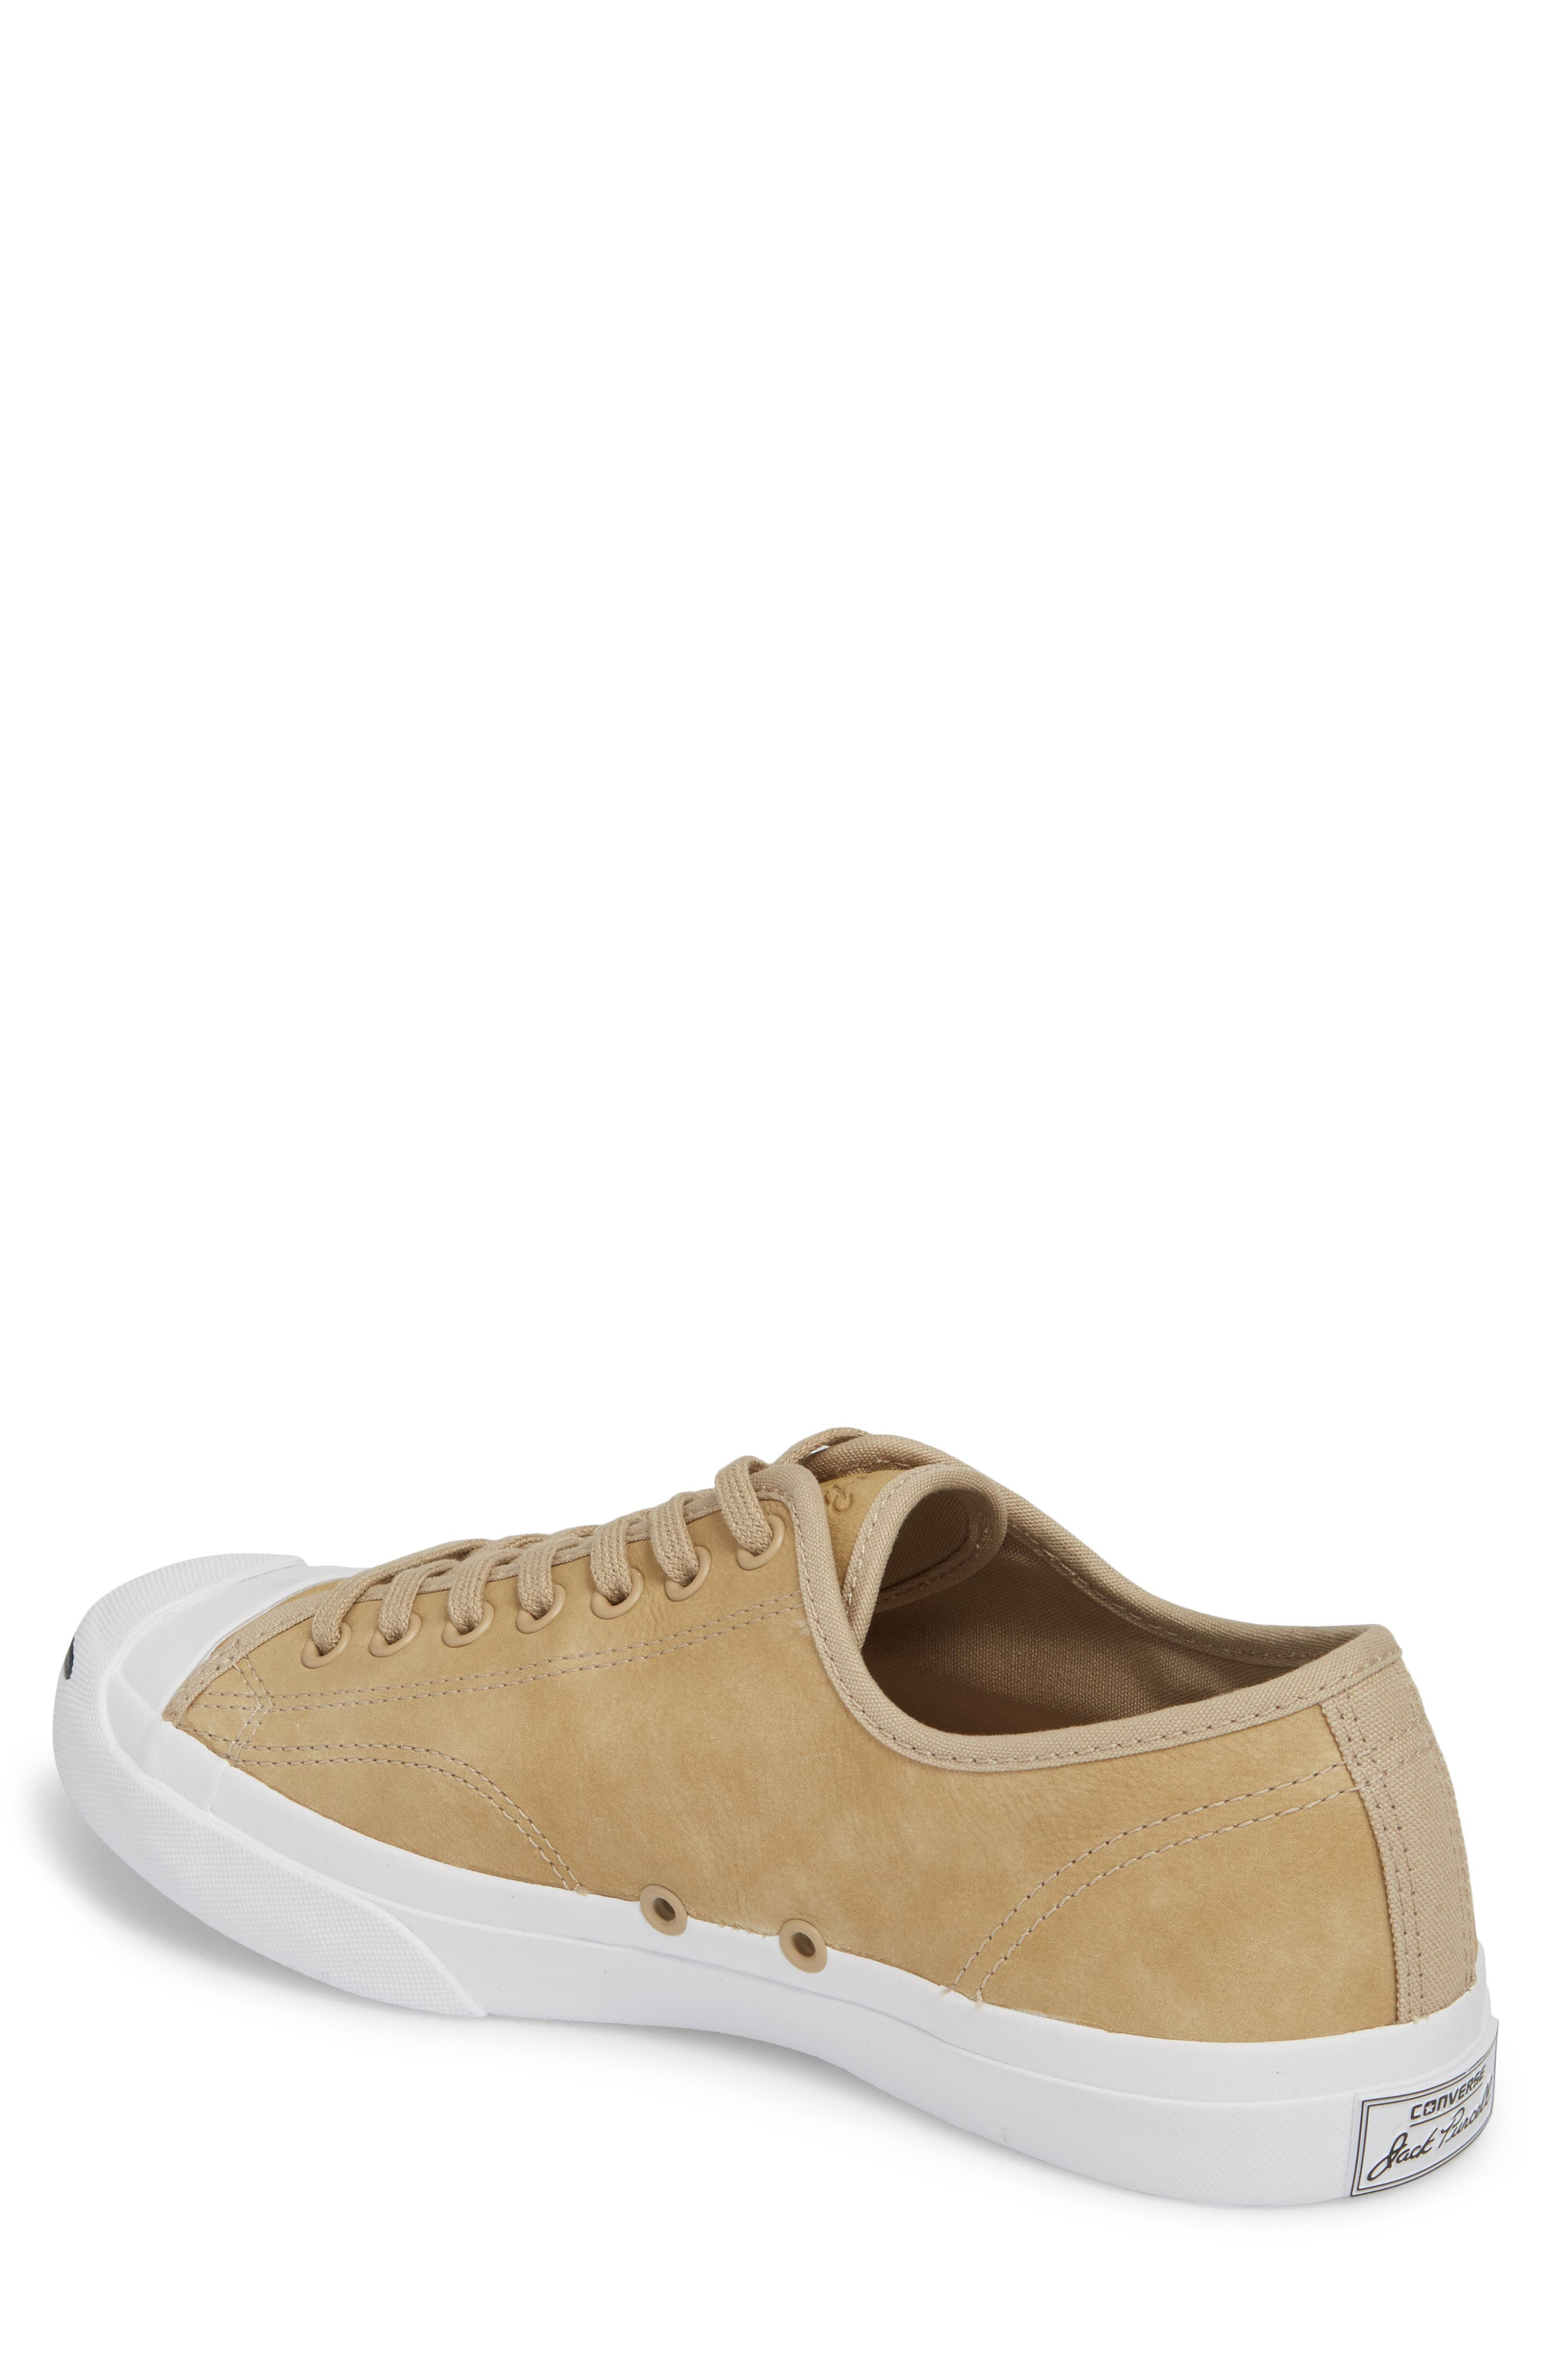 'Jack Purcell - Jack' Sneaker,                             Alternate thumbnail 2, color,                             270